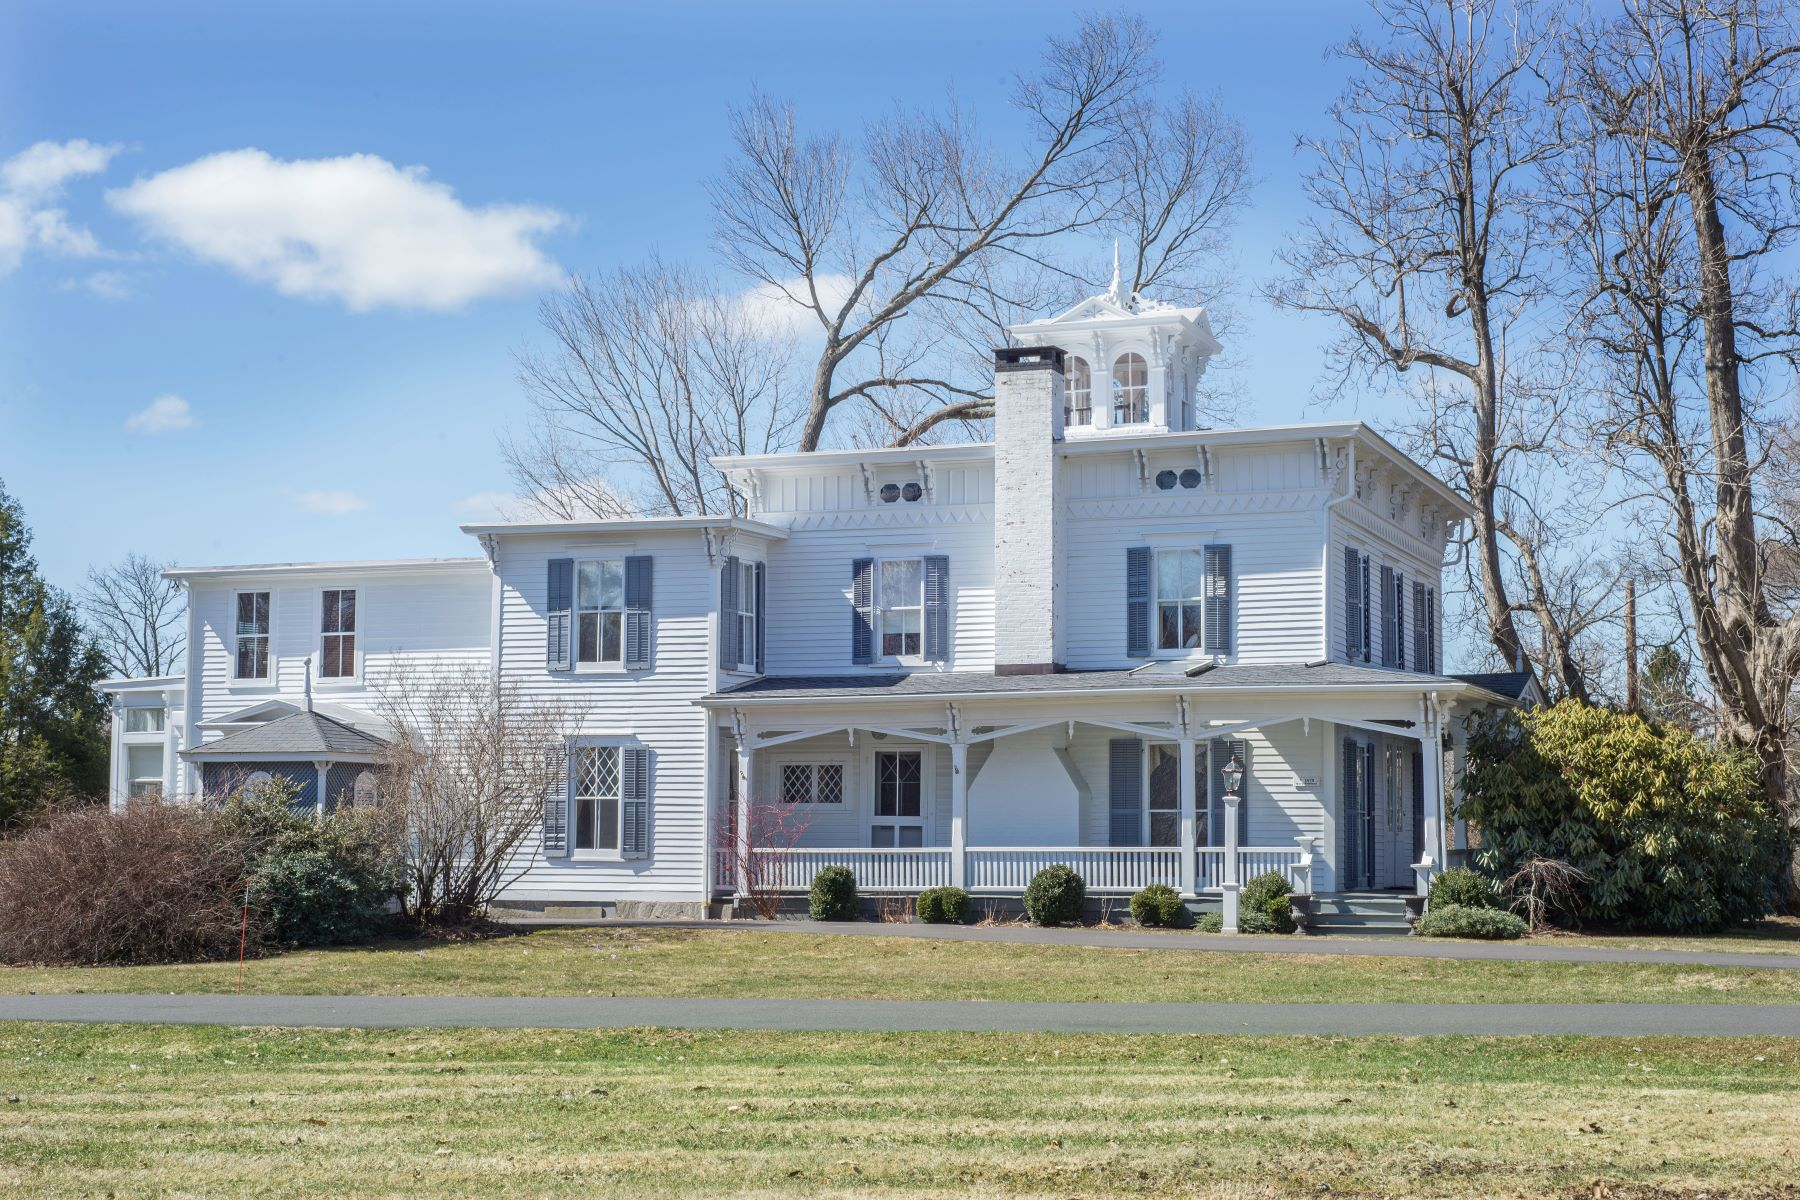 Single Family Home for Sale at Exquisite Victorian Italianate Antique 176 Cross Highway Redding, Connecticut 06896 United States